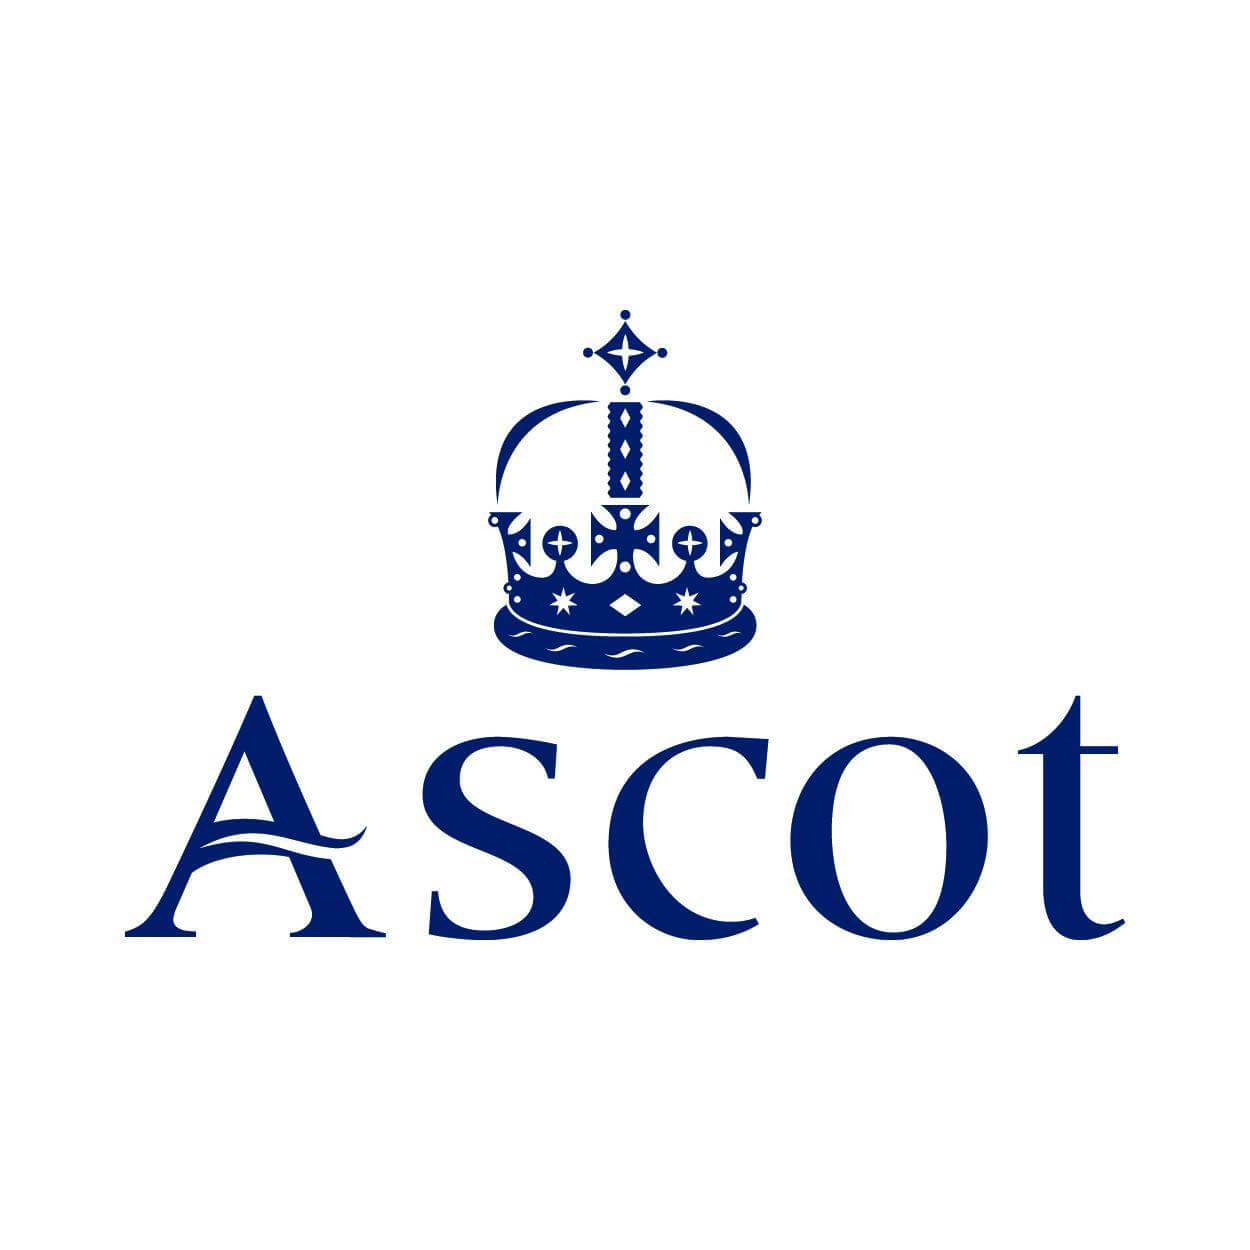 Royal Ascot Races (19-23 June 2018)